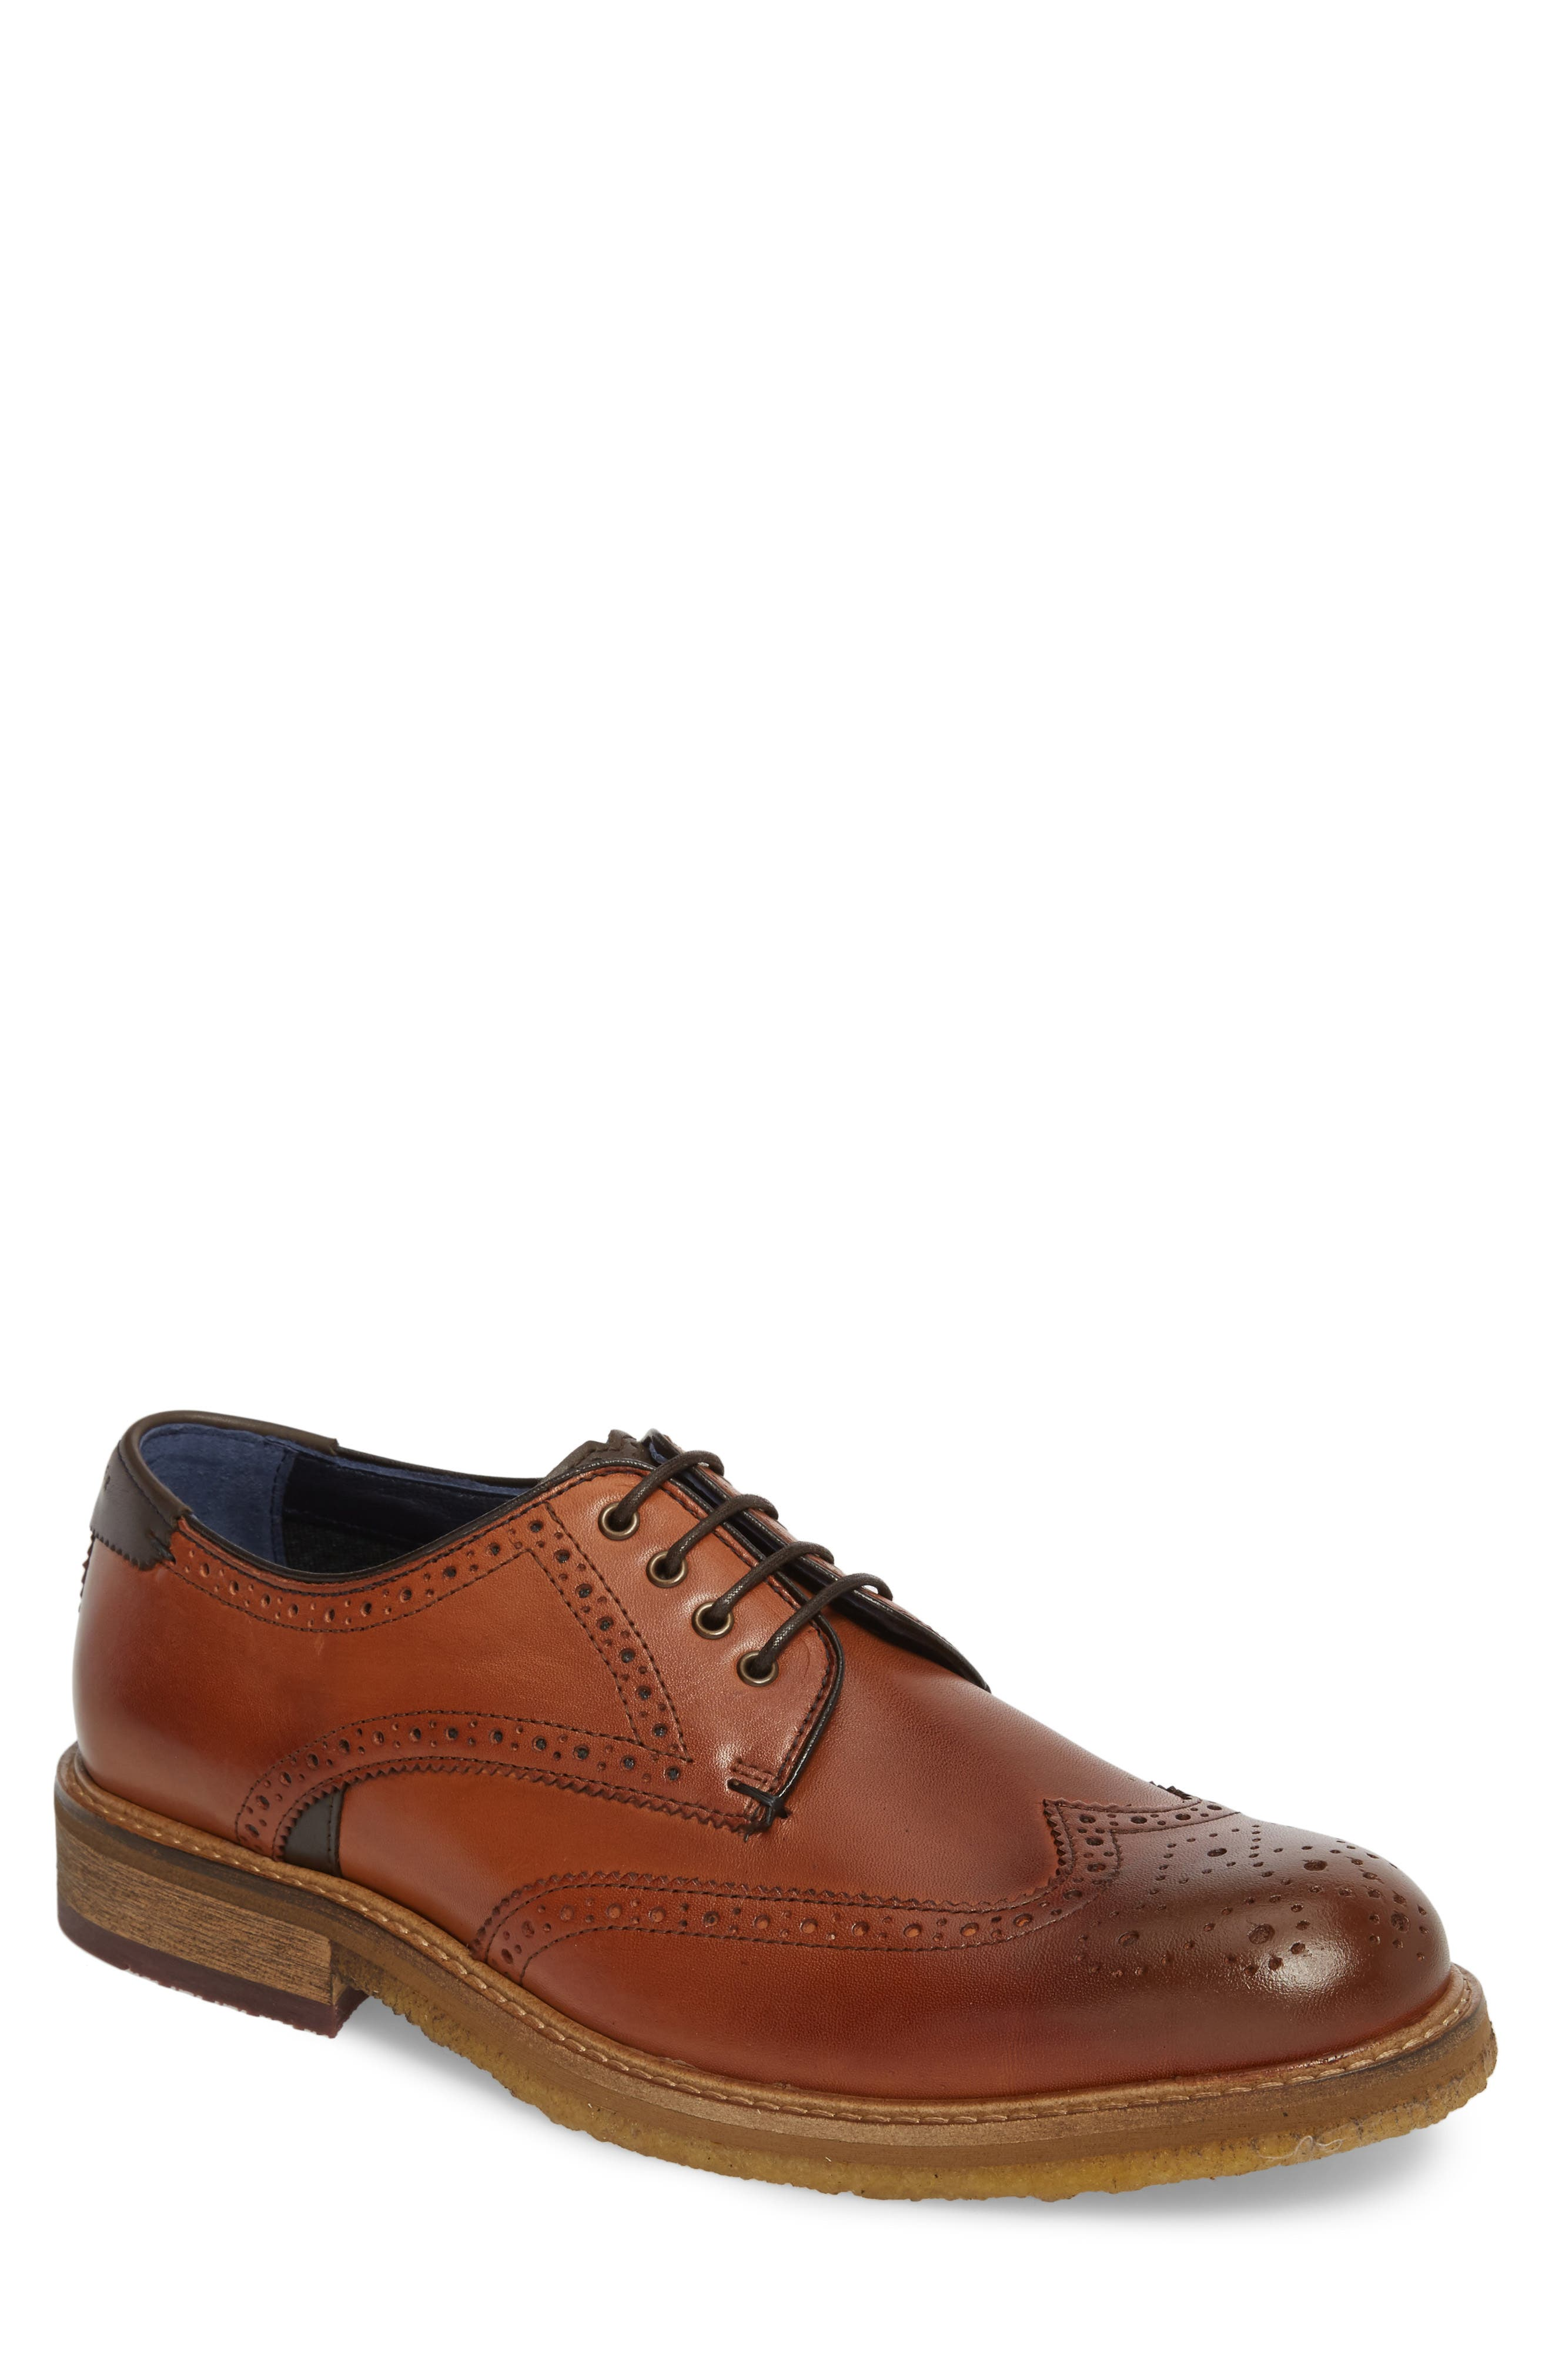 Prycce Wingtip Derby,                             Main thumbnail 1, color,                             Tan Leather